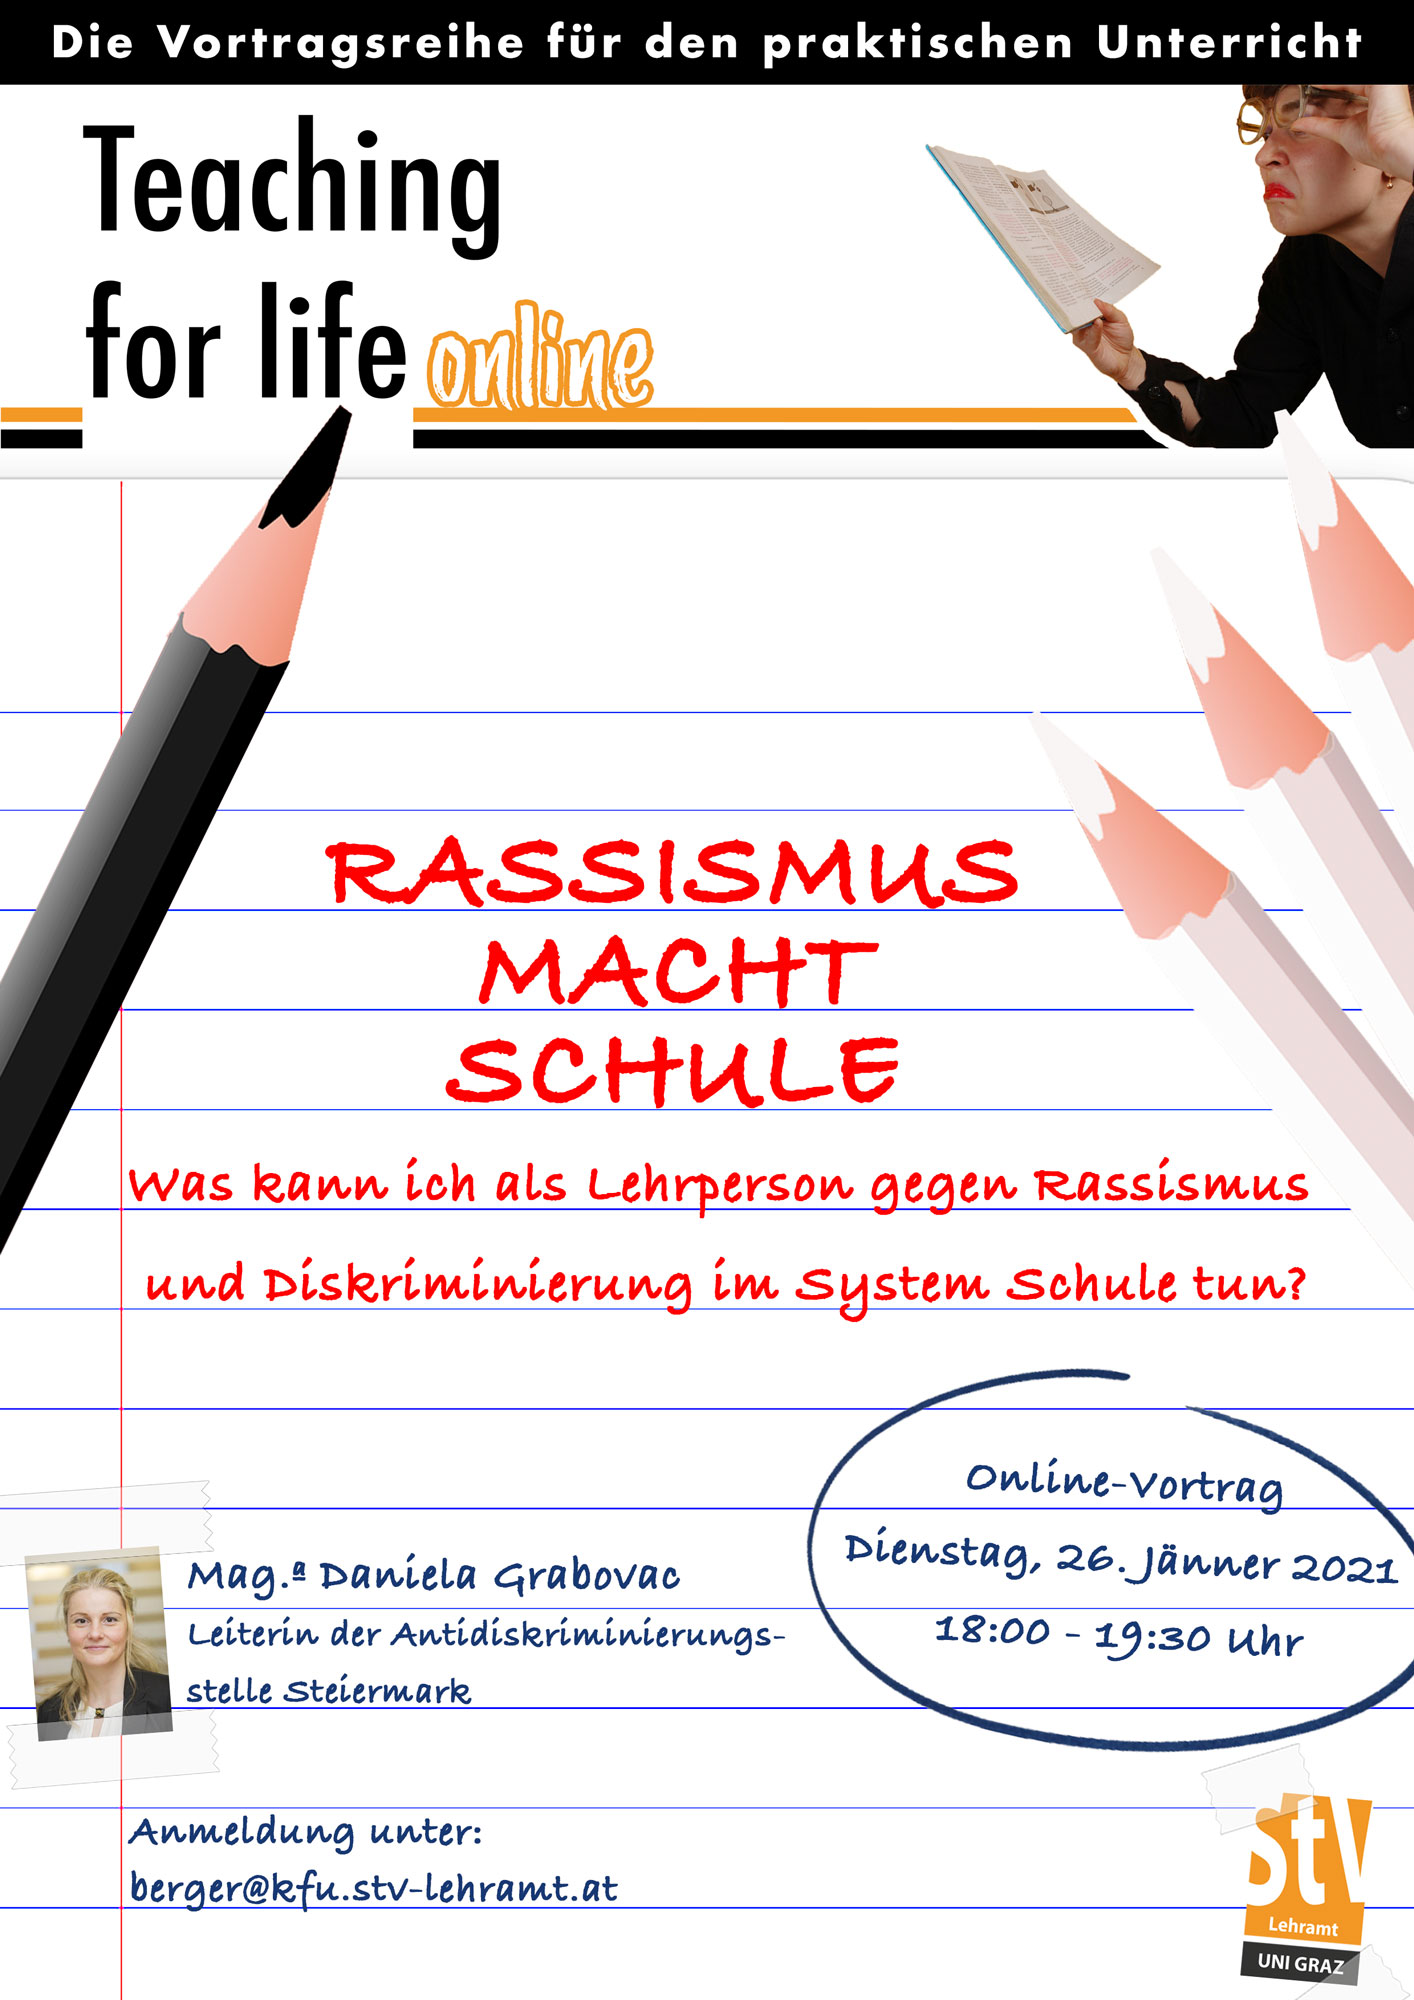 Rassismus-Macht-Schule  (Teaching for life)